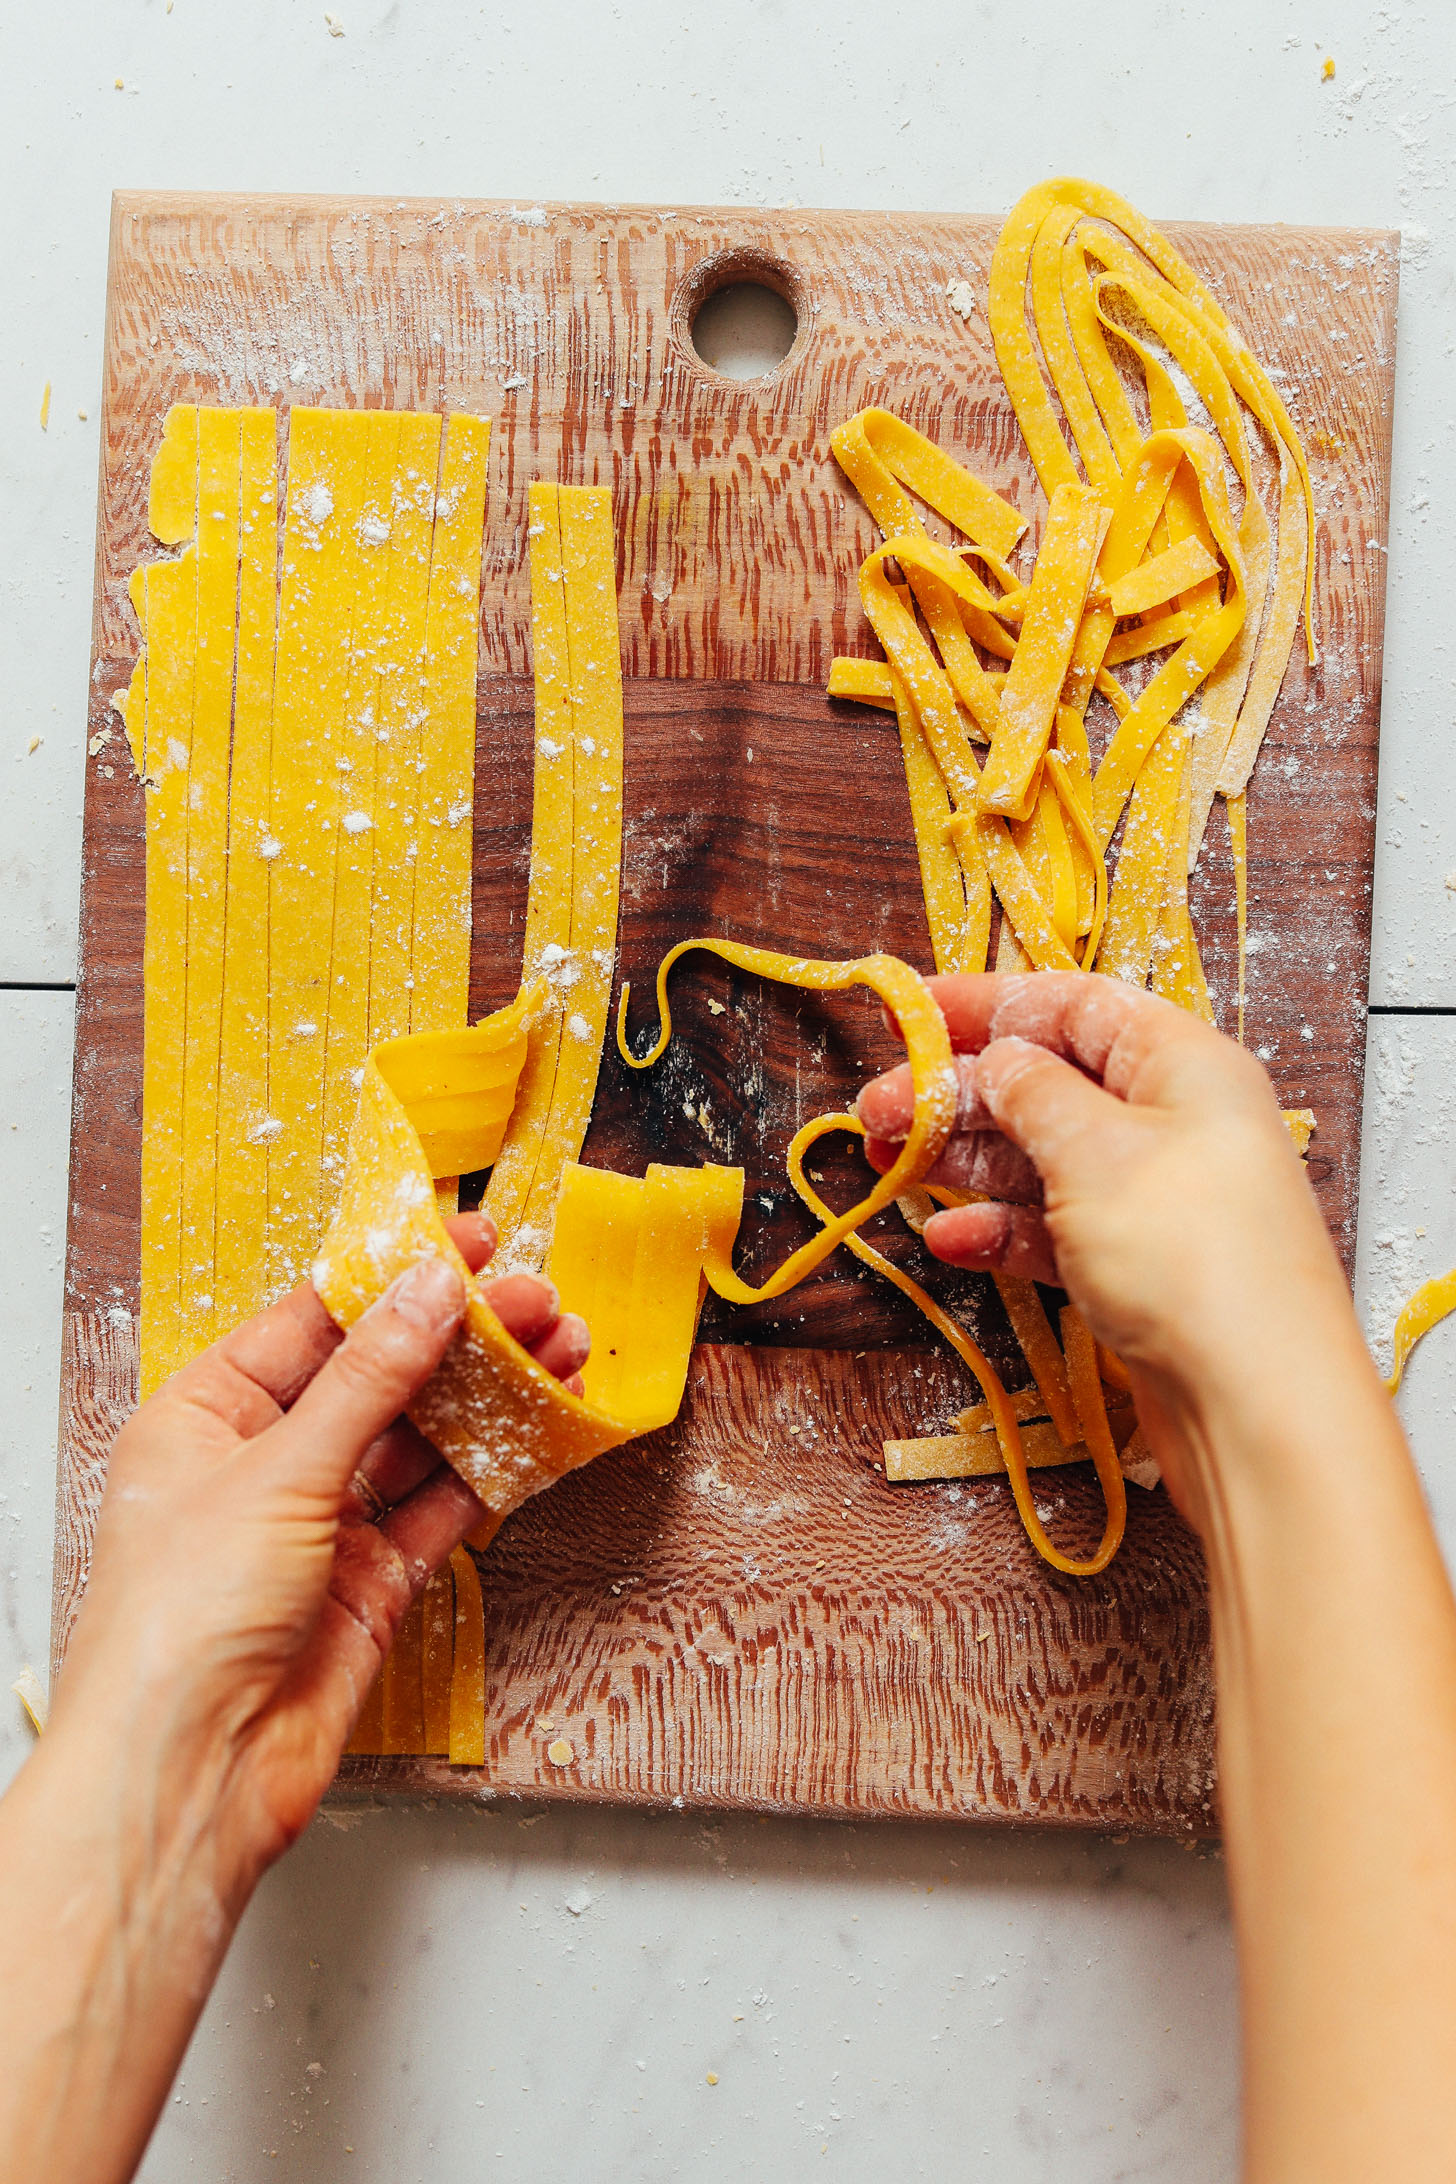 Picking up strips of our homemade Gluten Free Pasta recipe